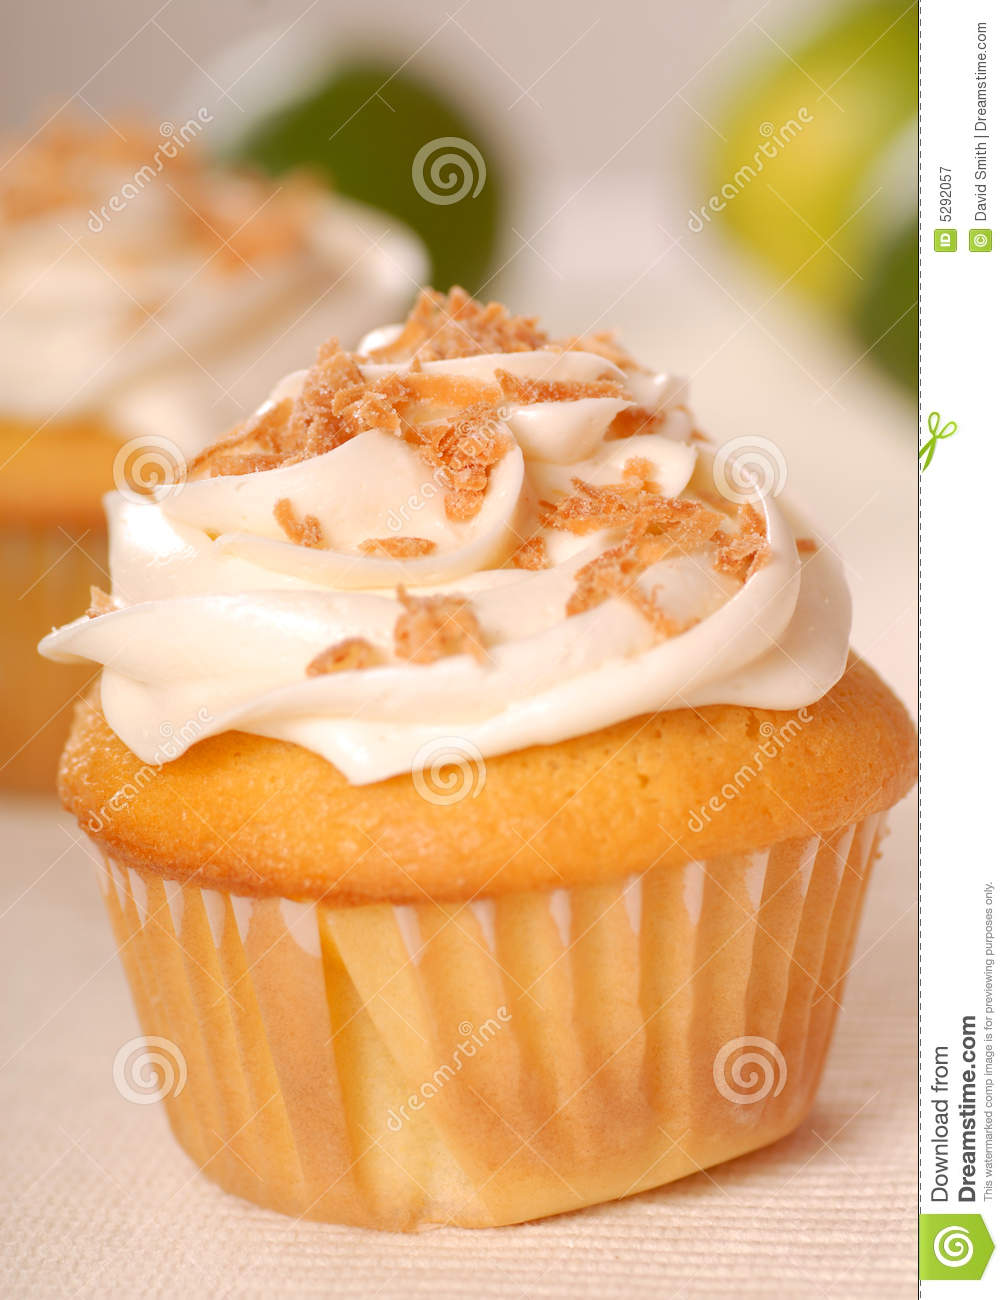 Vanilla Cupcake With A Lemon Buttercream Frosting Royalty-Free Stock Photo | CartoonDealer.com ...